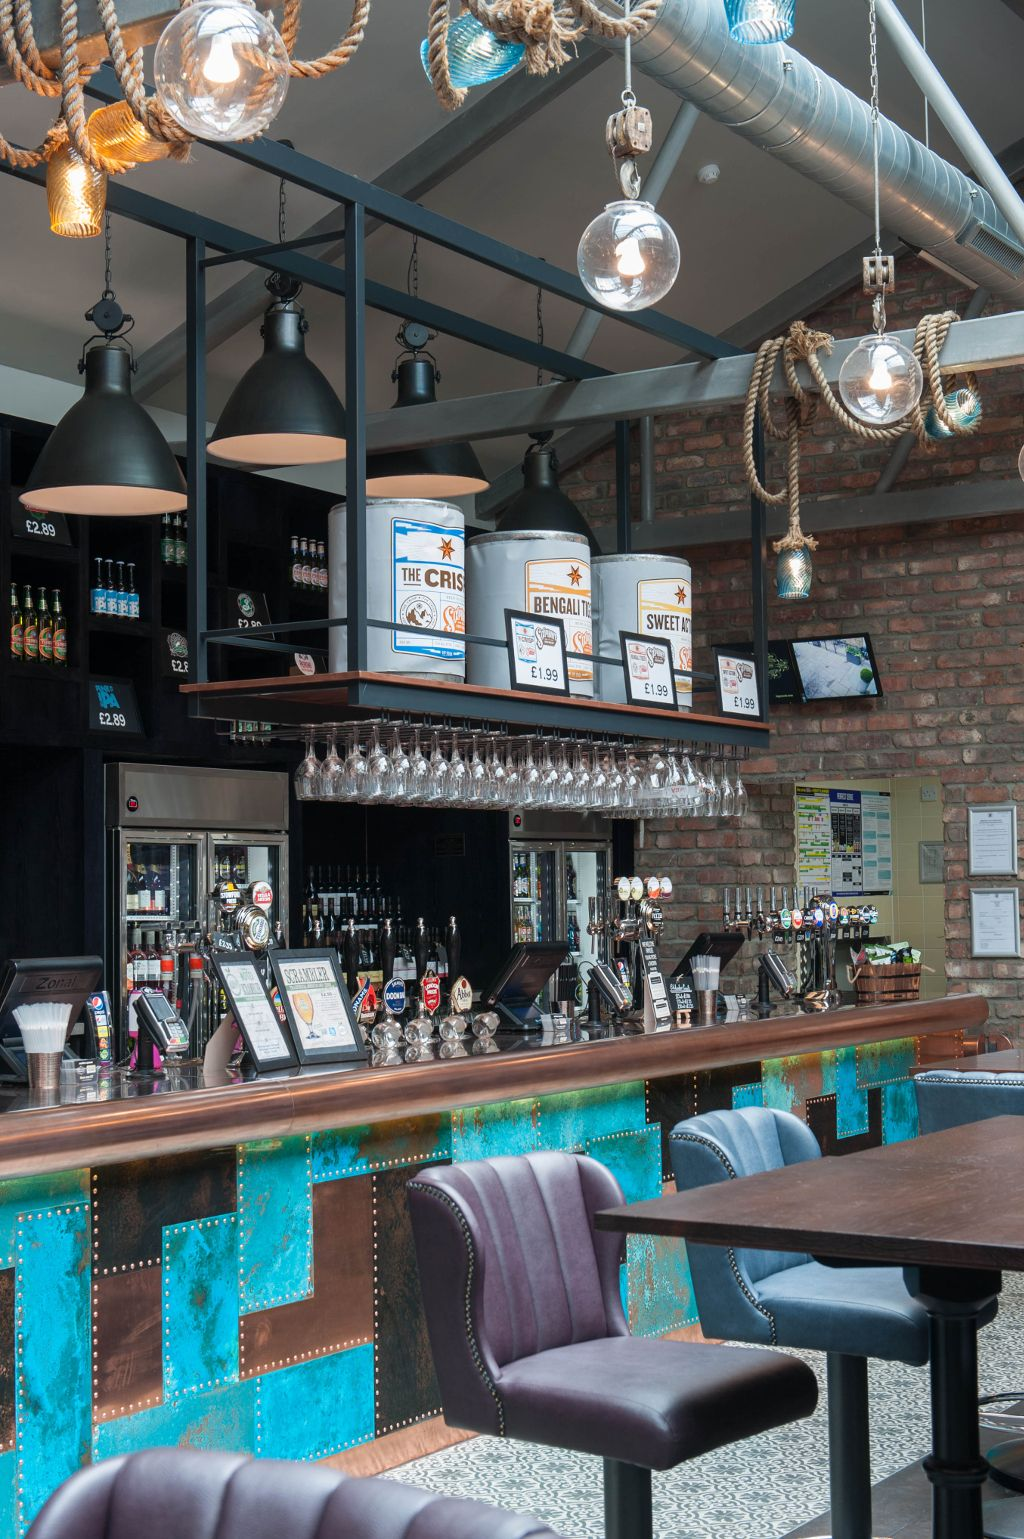 Restaurant & Bar Design Awards Shortlist 2015: Pub (UK) - Restaurant & Bar